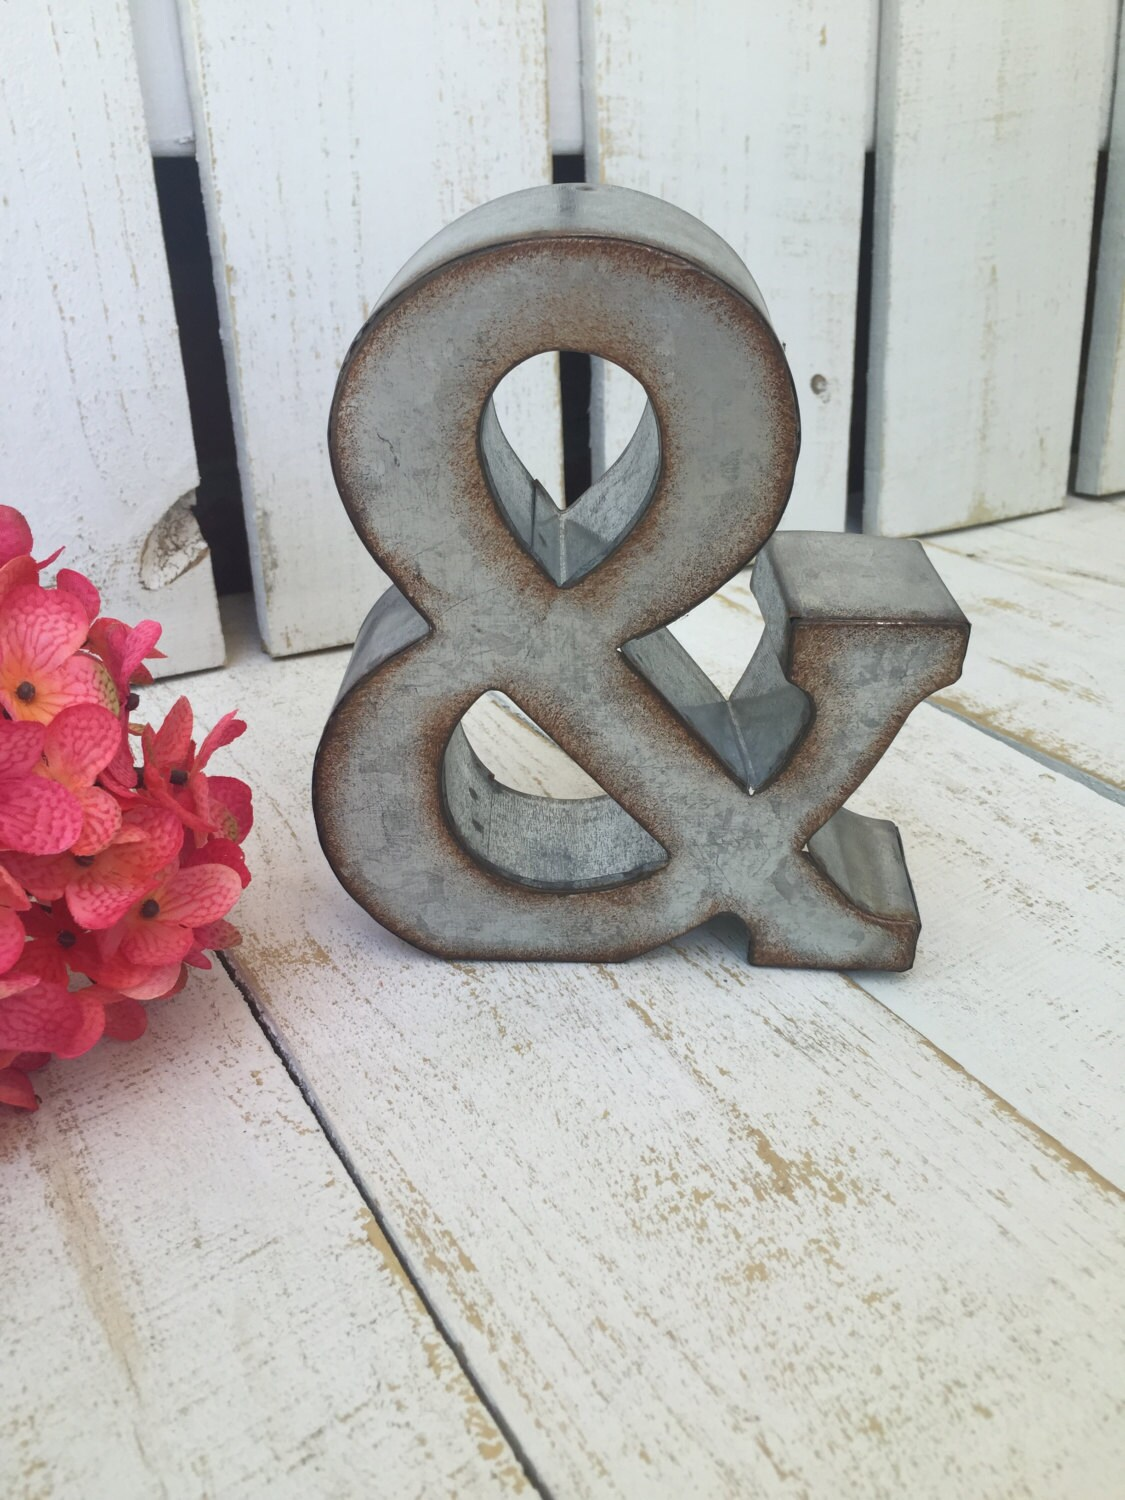 metal letter wall art metal letter galvanized letter ampersand home wall etsy 13994 | il fullxfull.962174238 oitb